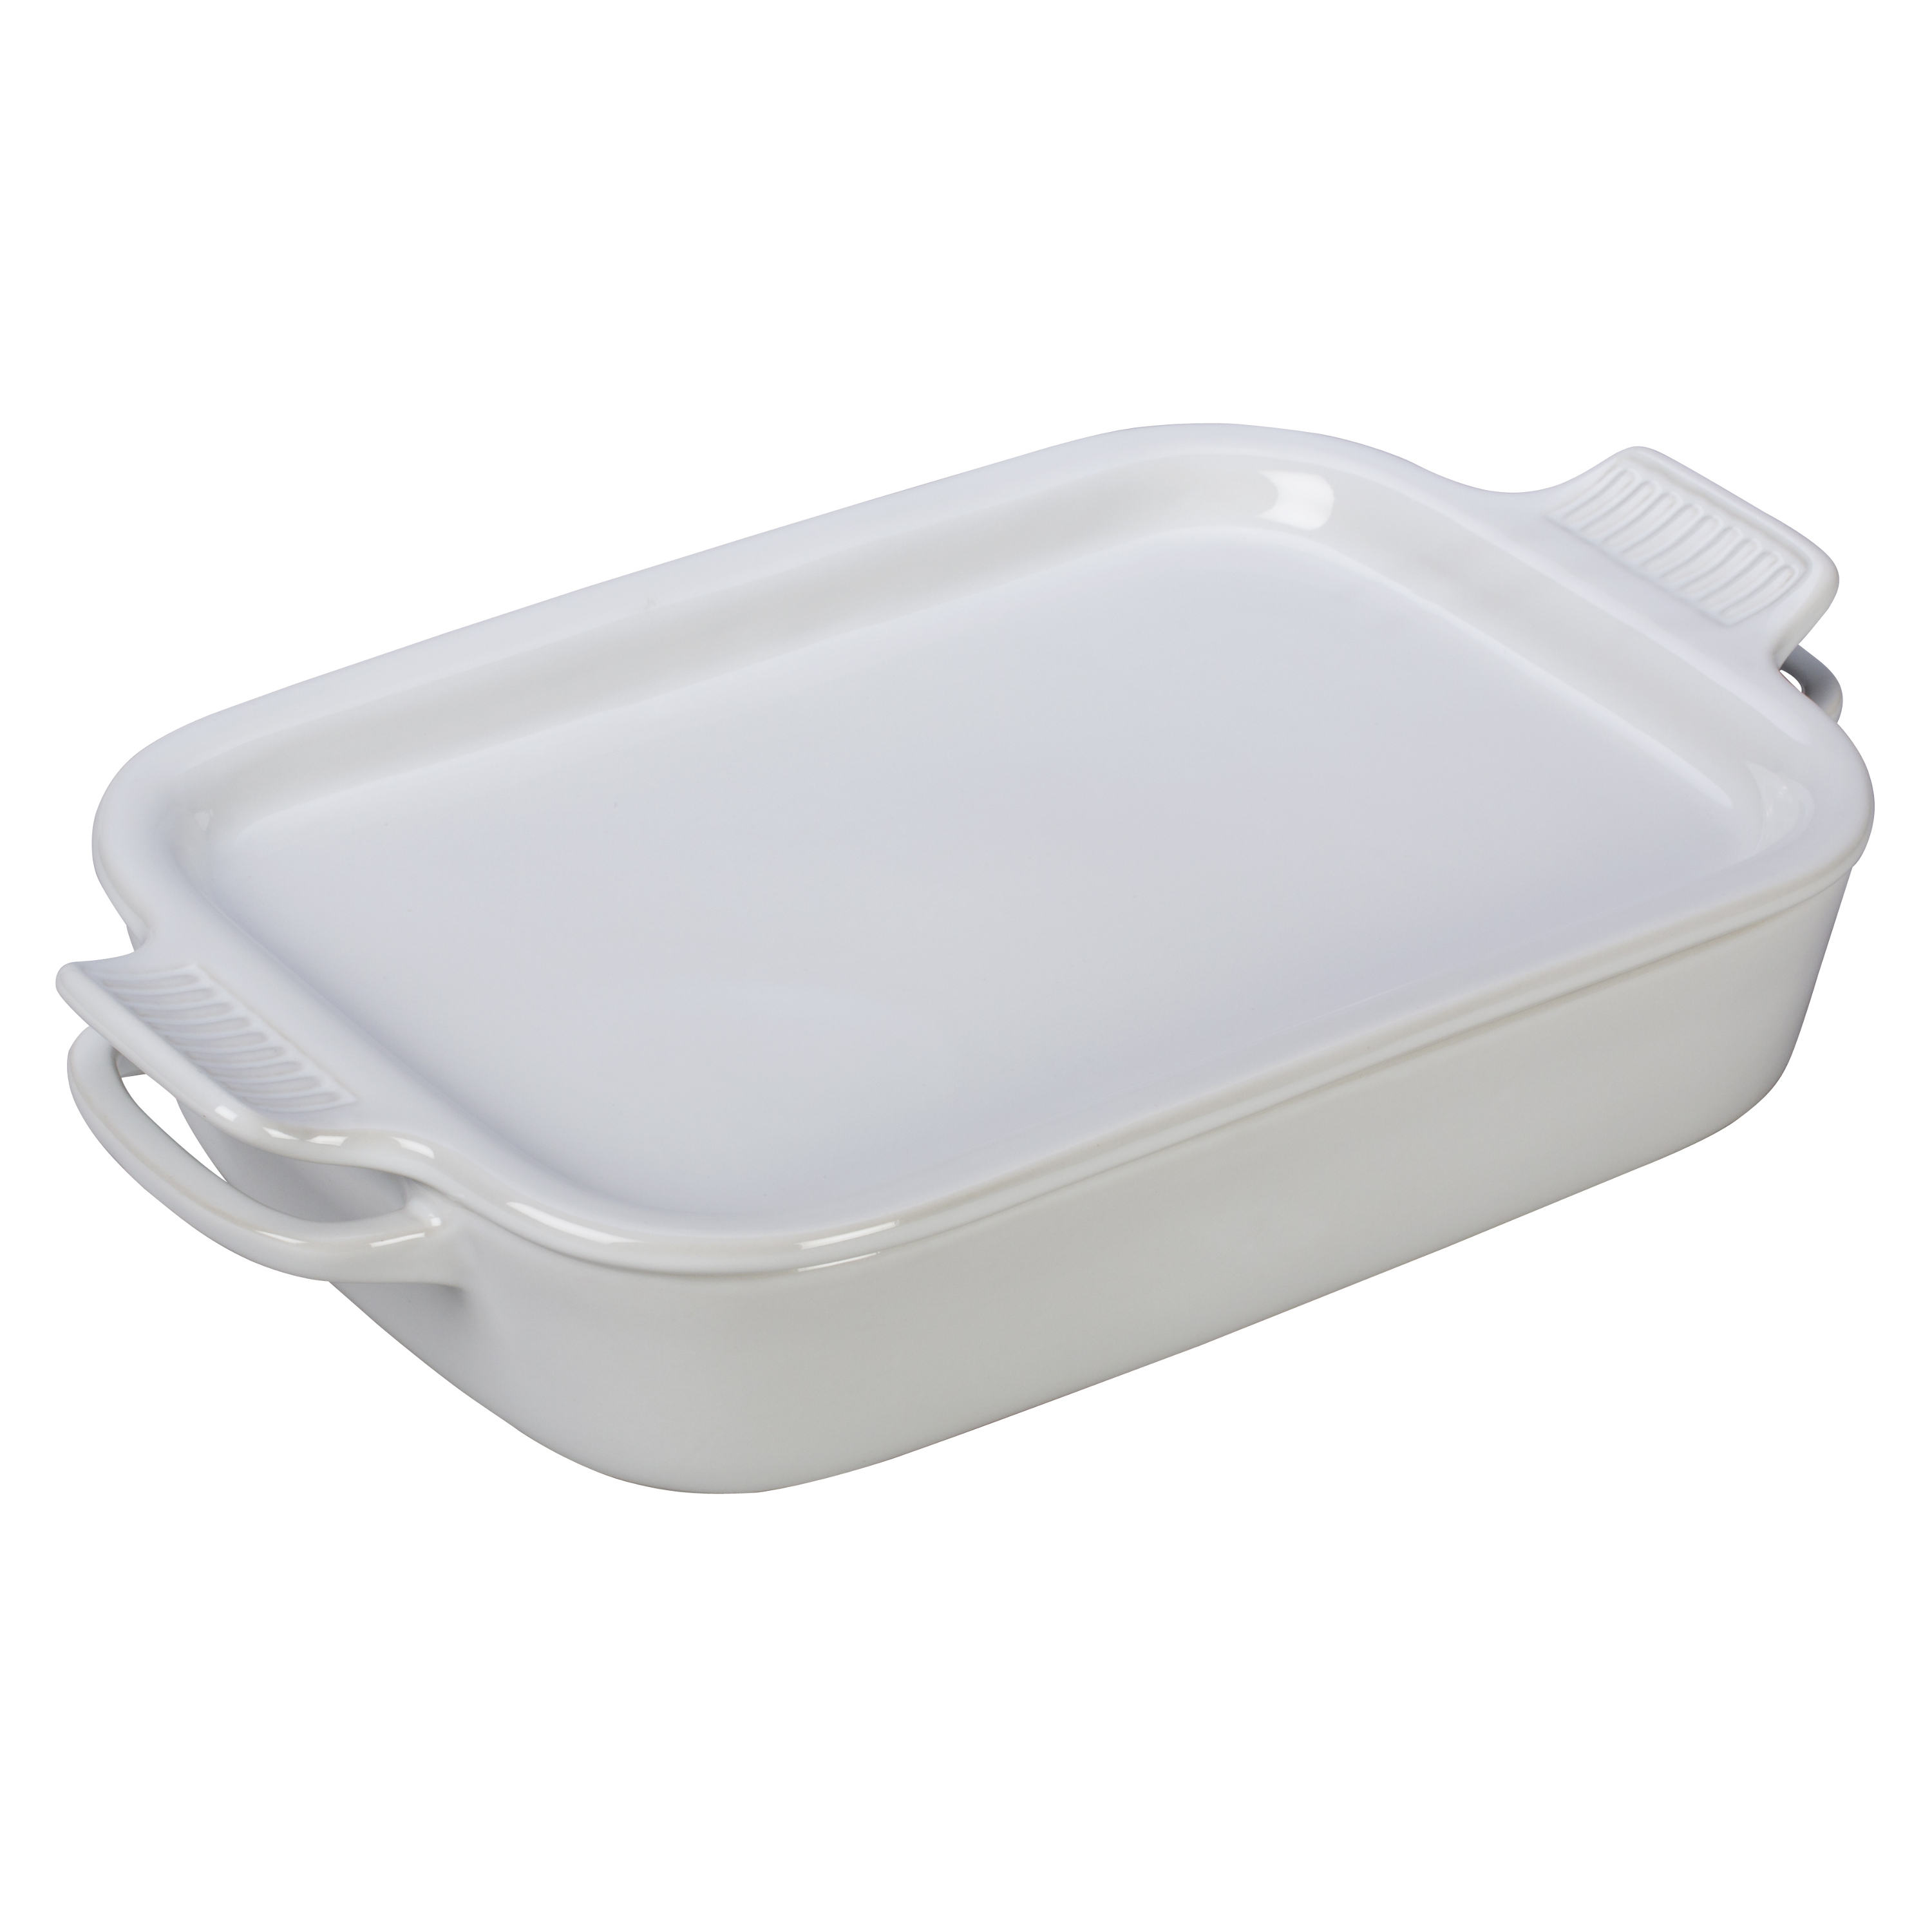 Le Creuset White Stoneware Rectangular Baking Dish with Platter Lid